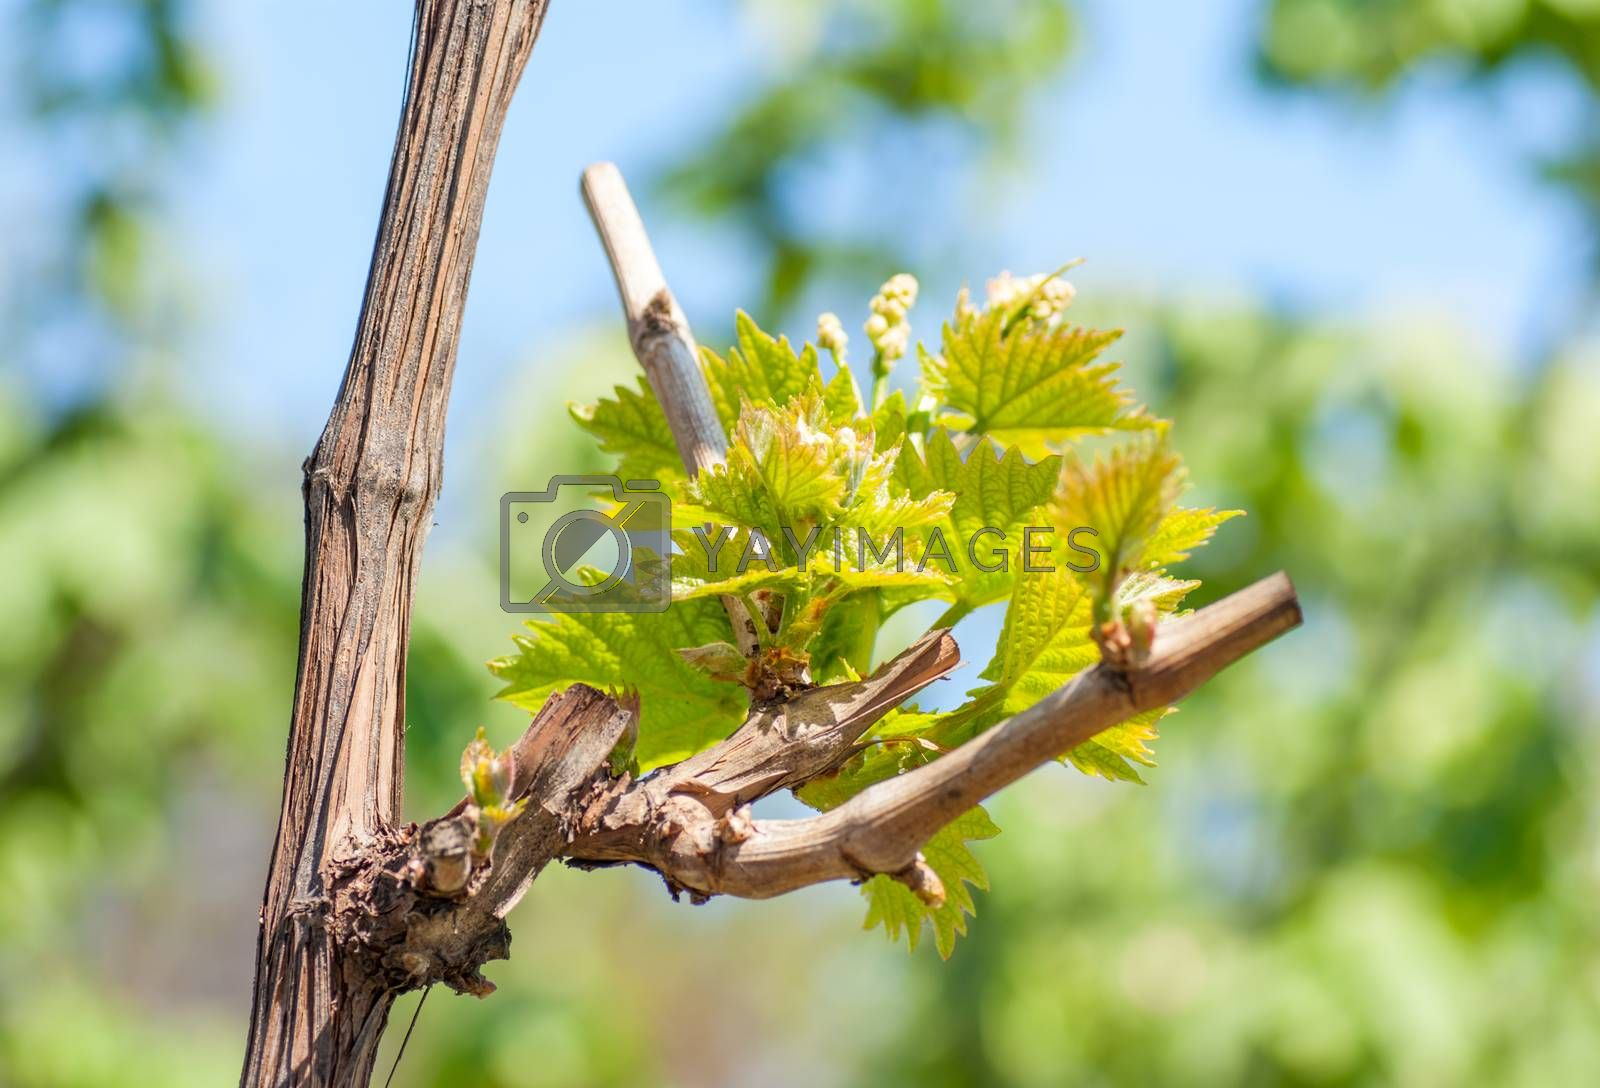 Royalty free image of Spring season background with vine leaves in the vineyard by Zhukow